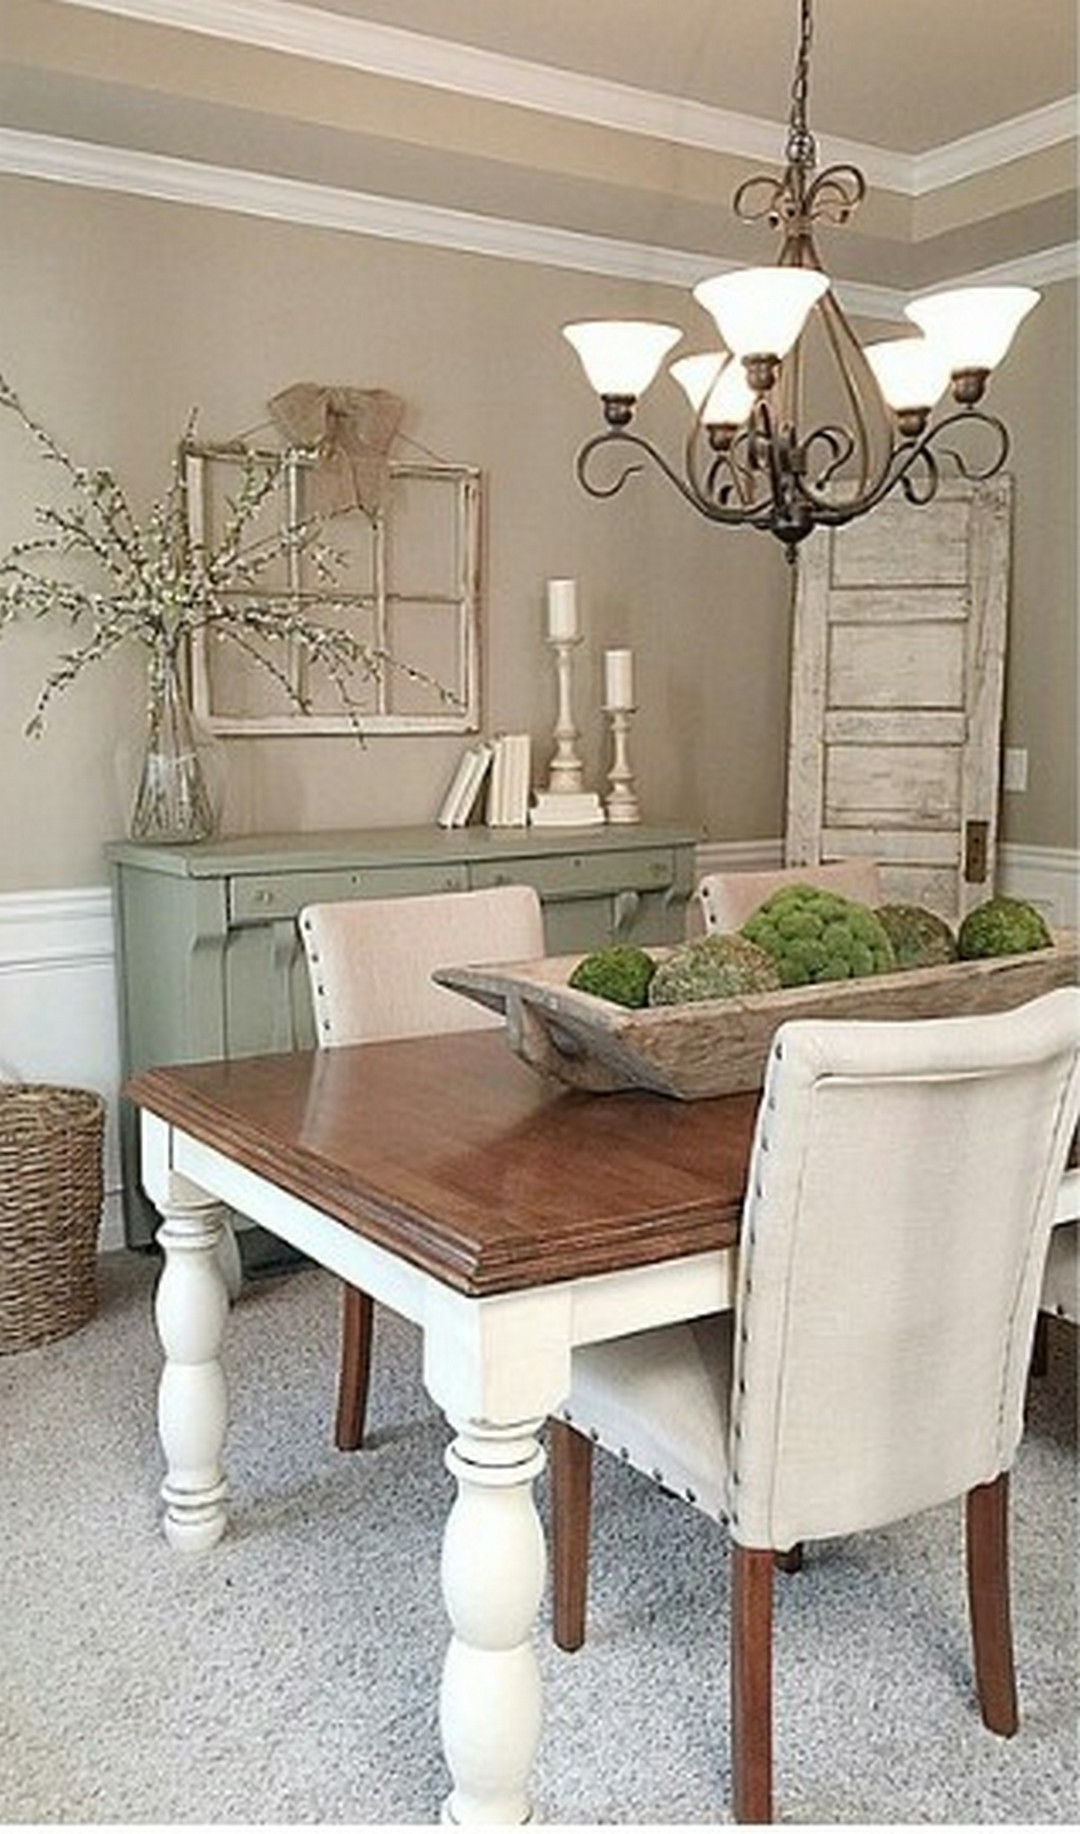 Most Popular Modern Rustic Farmhouse Dining Room Style Home – Saltandblues With Regard To Small Rustic Look Dining Tables (View 10 of 25)